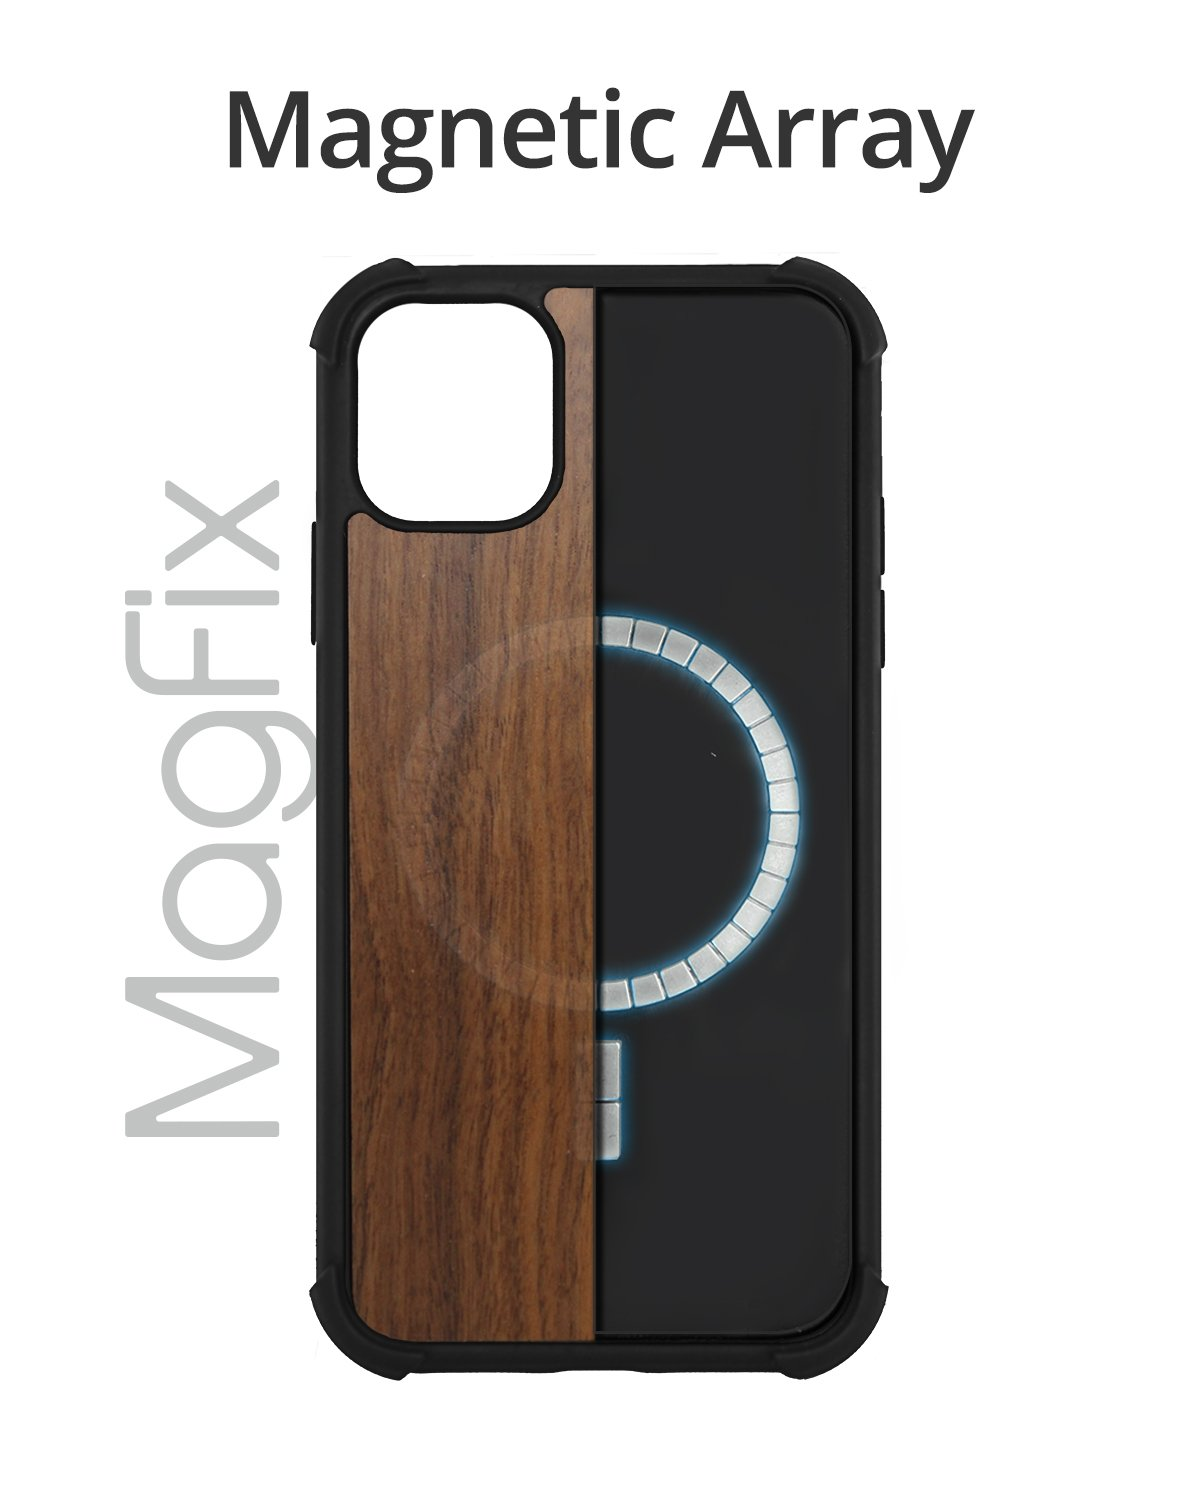 RAEGR iPhone 12 Mini 5G MagFix Magnetic Case, Supports Mag-Safe Wireless Charging 5.4